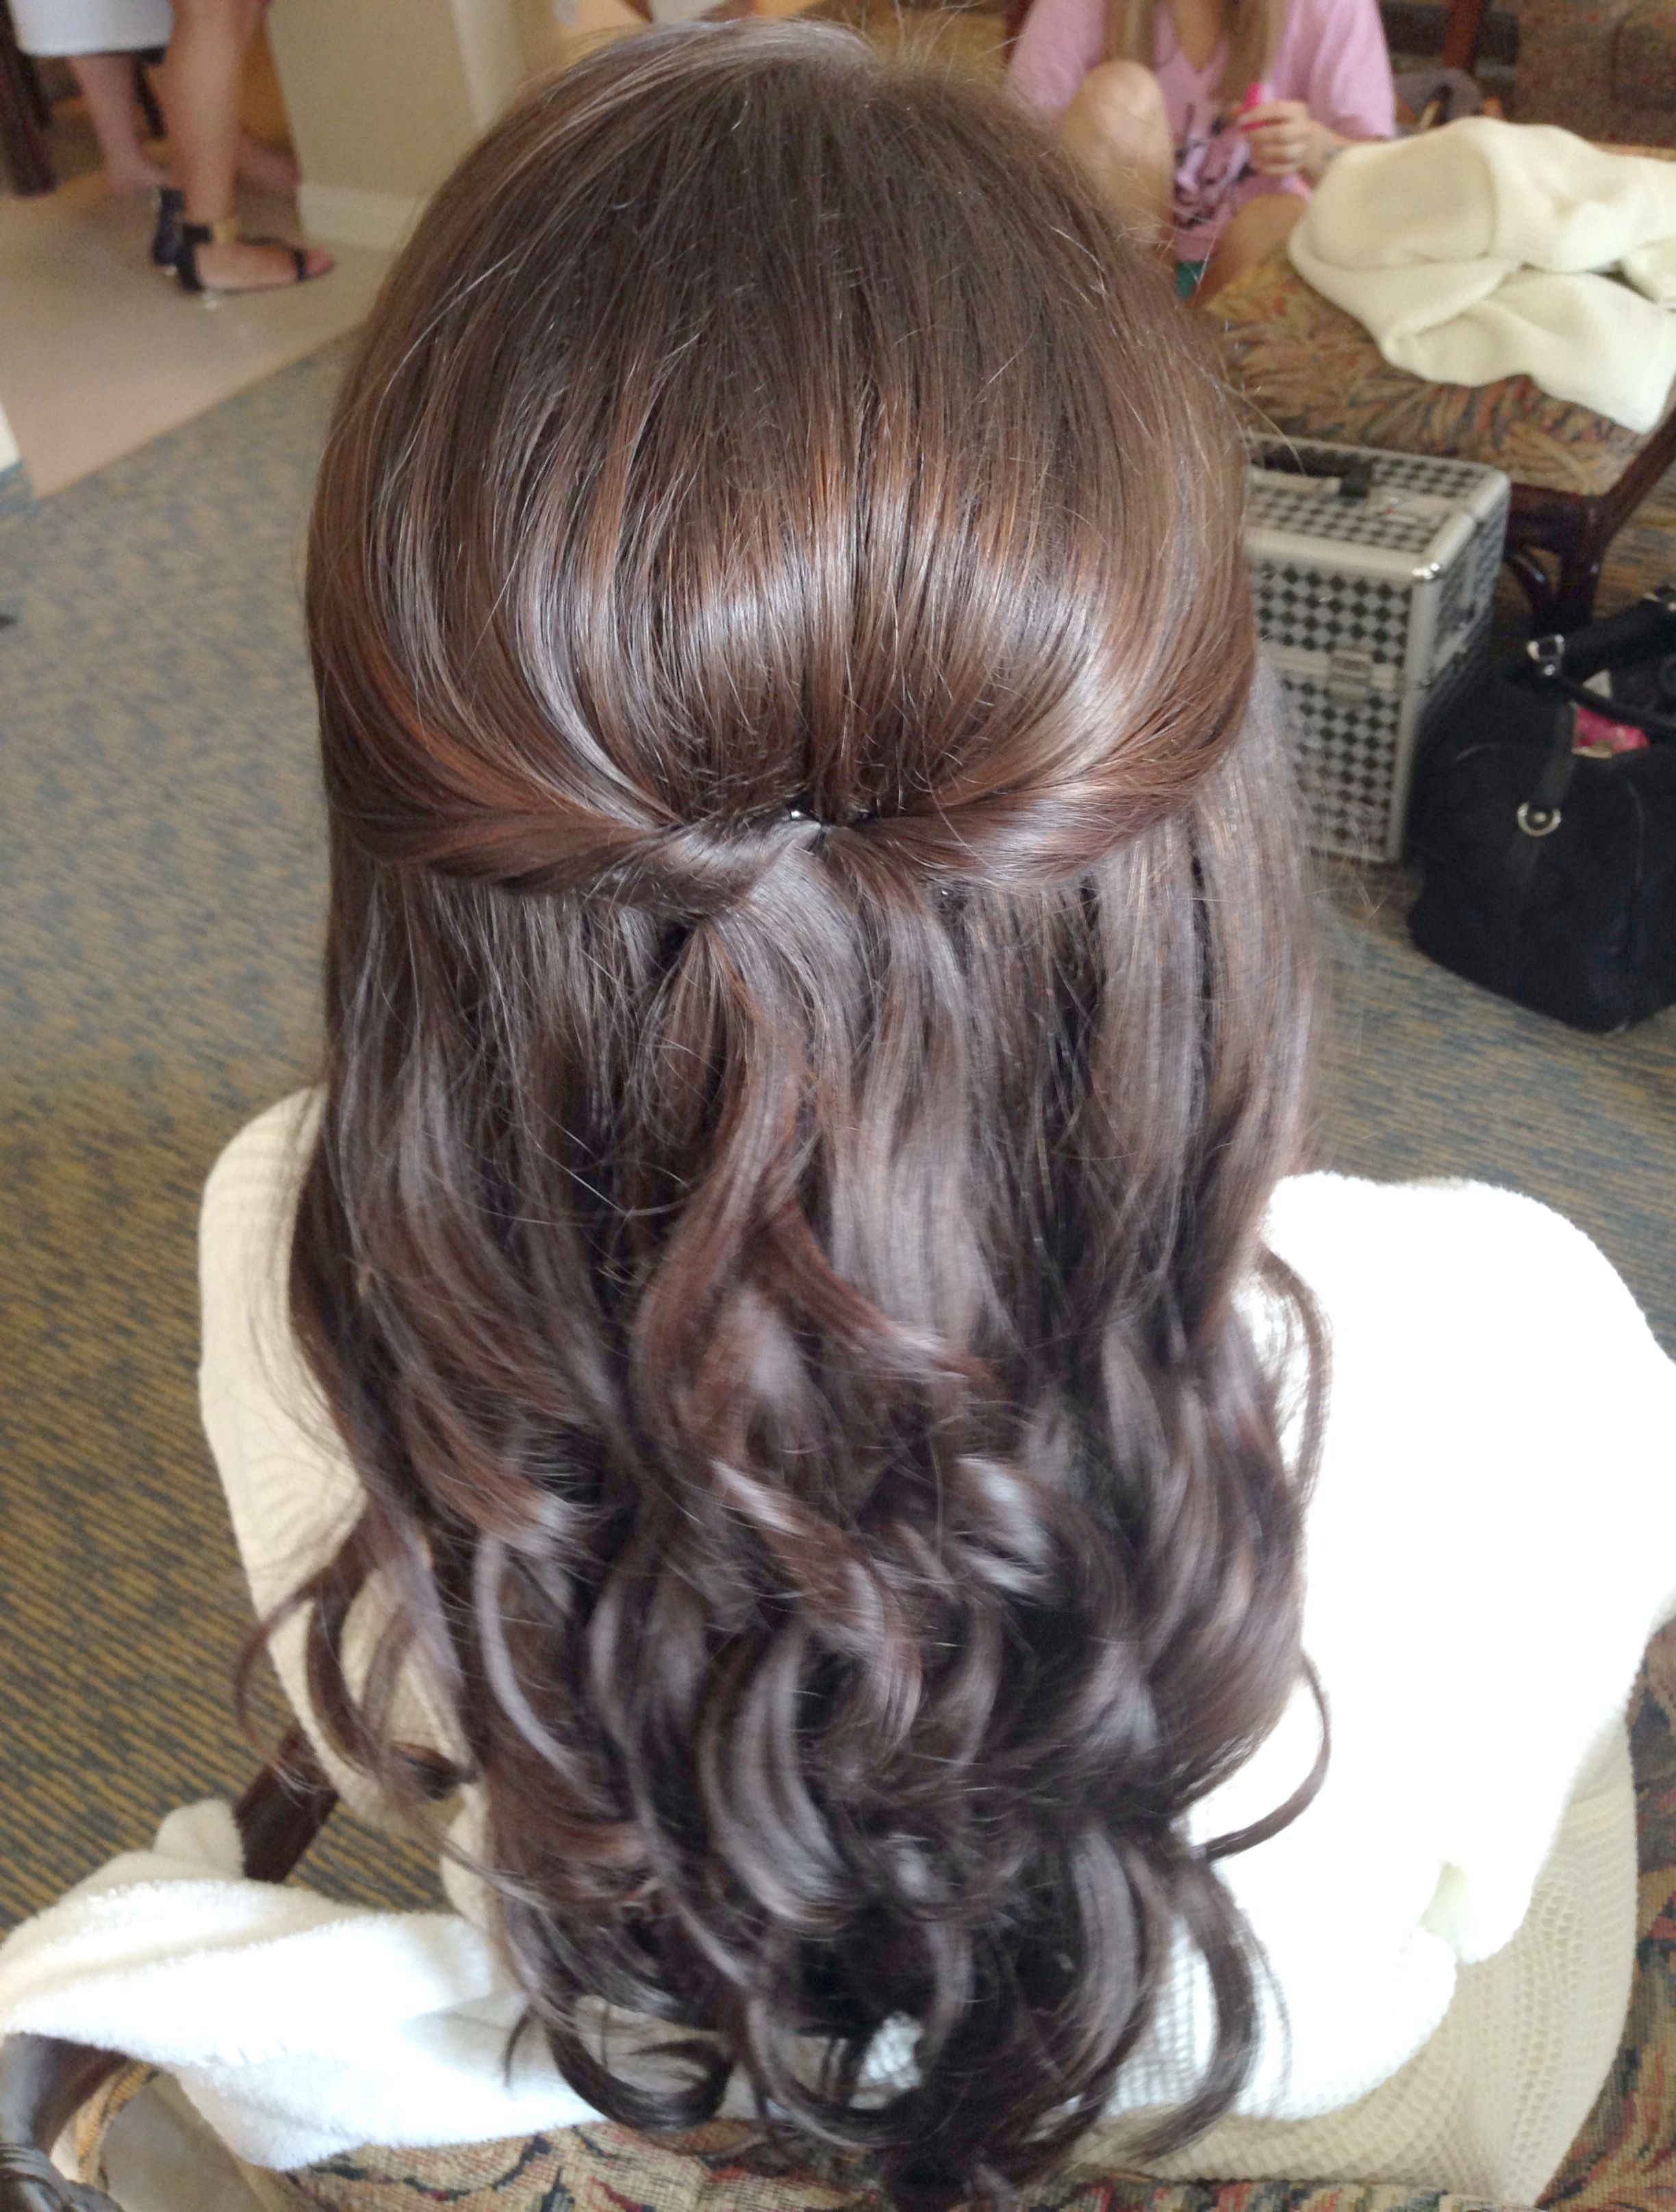 Wedding Hairstyles To Do At Home Simple Wedding Hairstyles Half Up Half Down Weddinghairstyles Medium Hair Styles Hair Styles Down Hairstyles